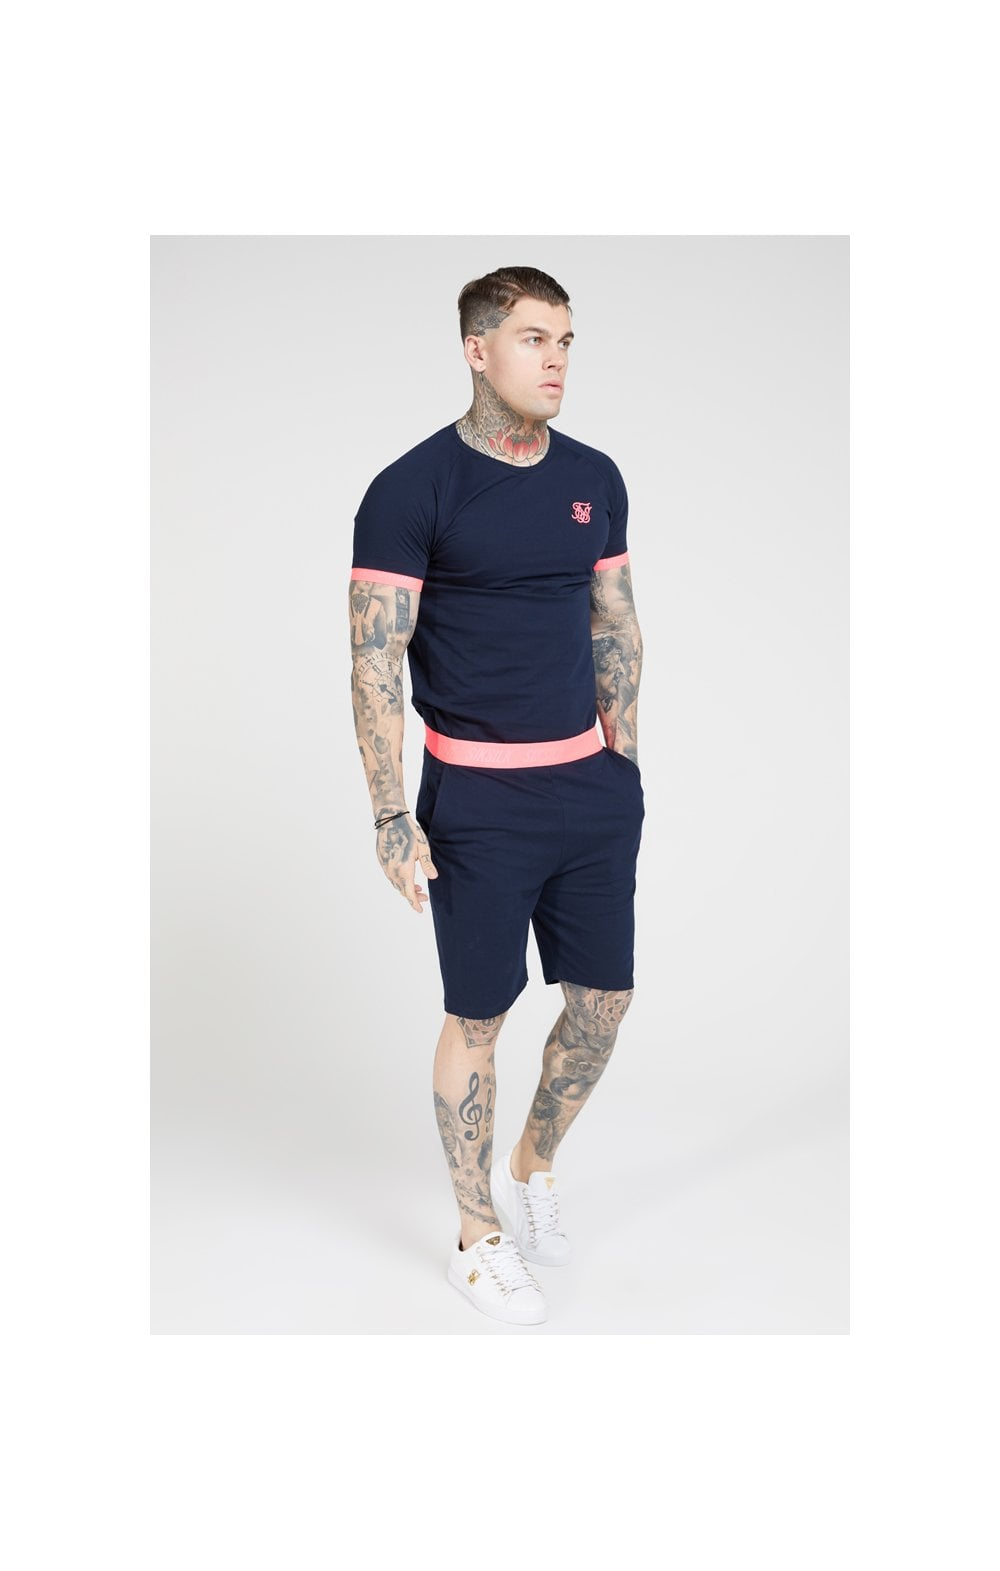 Load image into Gallery viewer, SikSilk S/S Neon Tech Tee – Navy & Neon Pink (4)